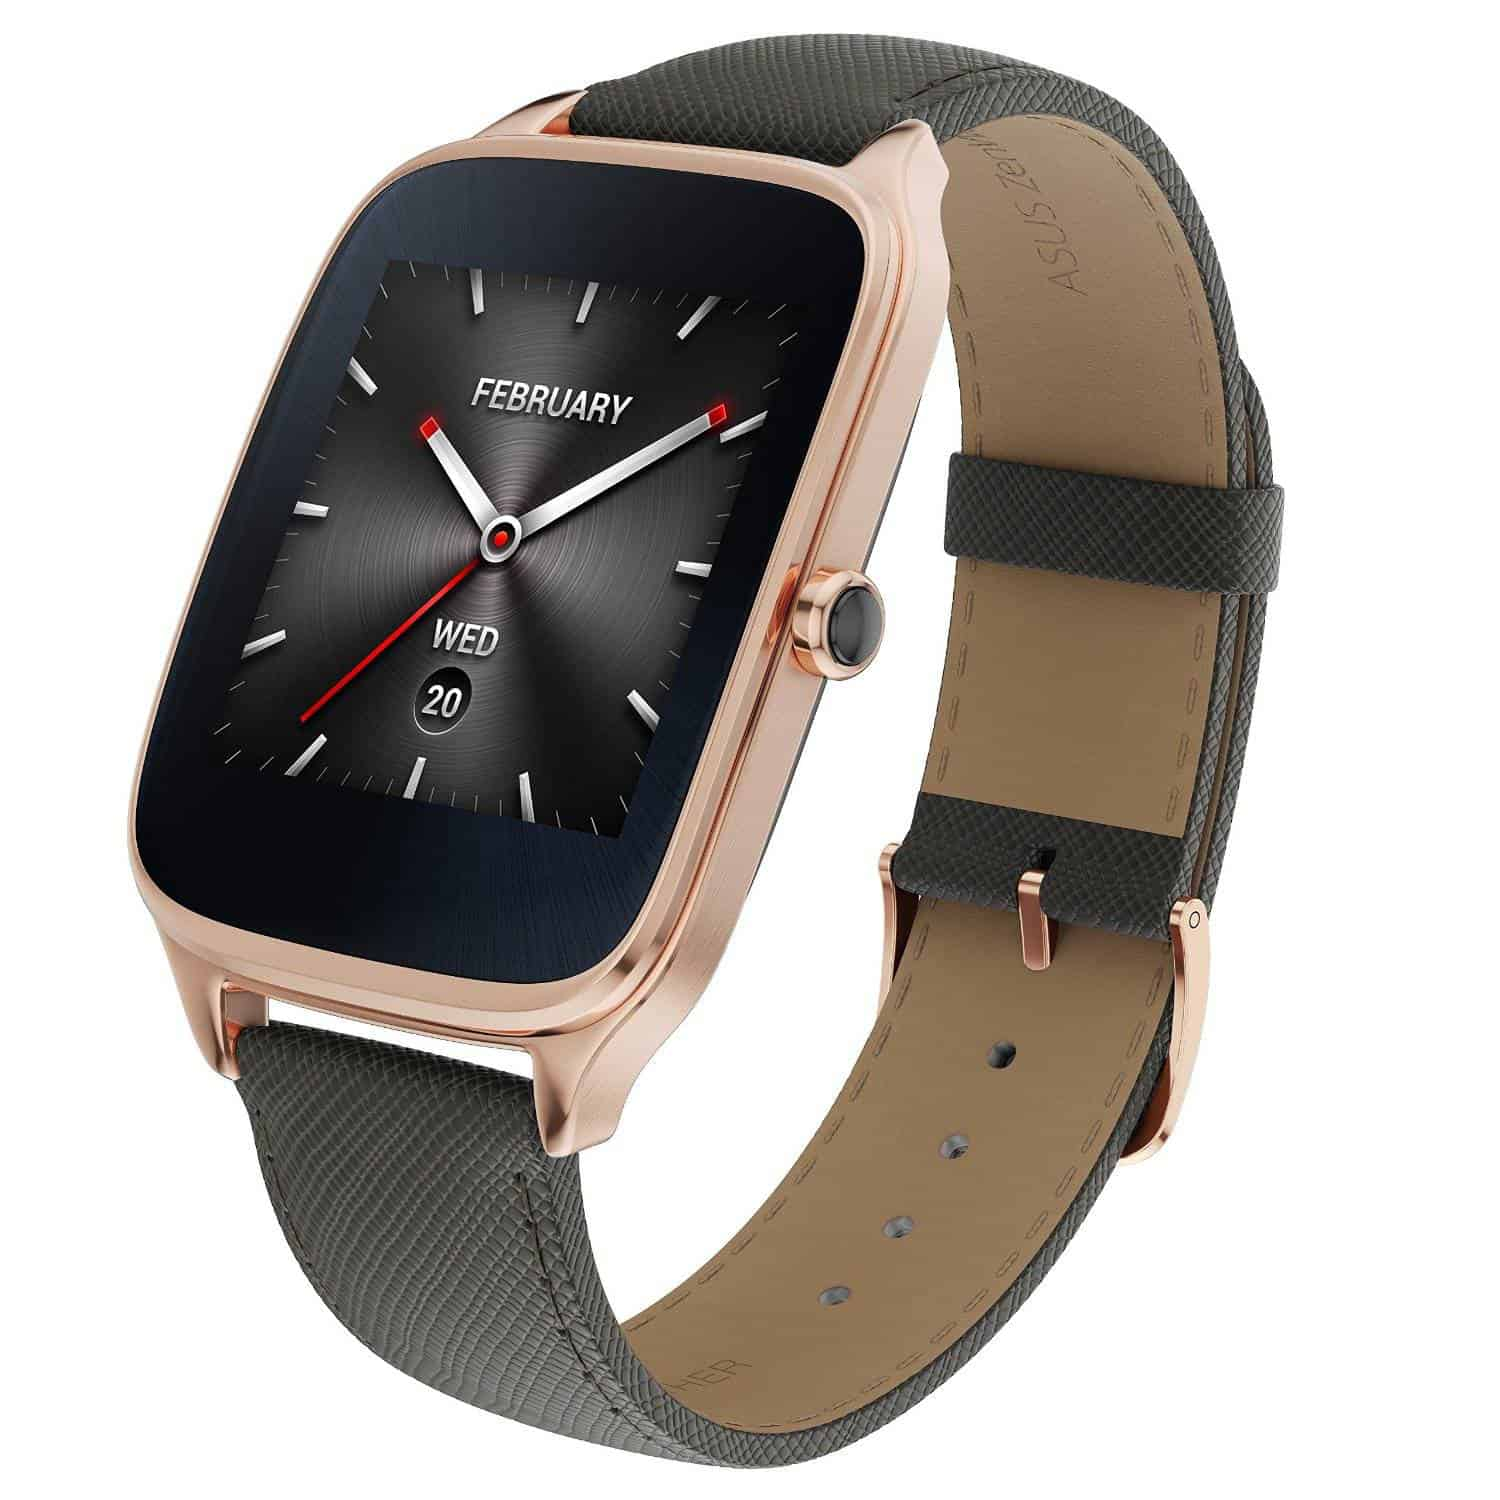 ASUS ZenWatch 2 deal